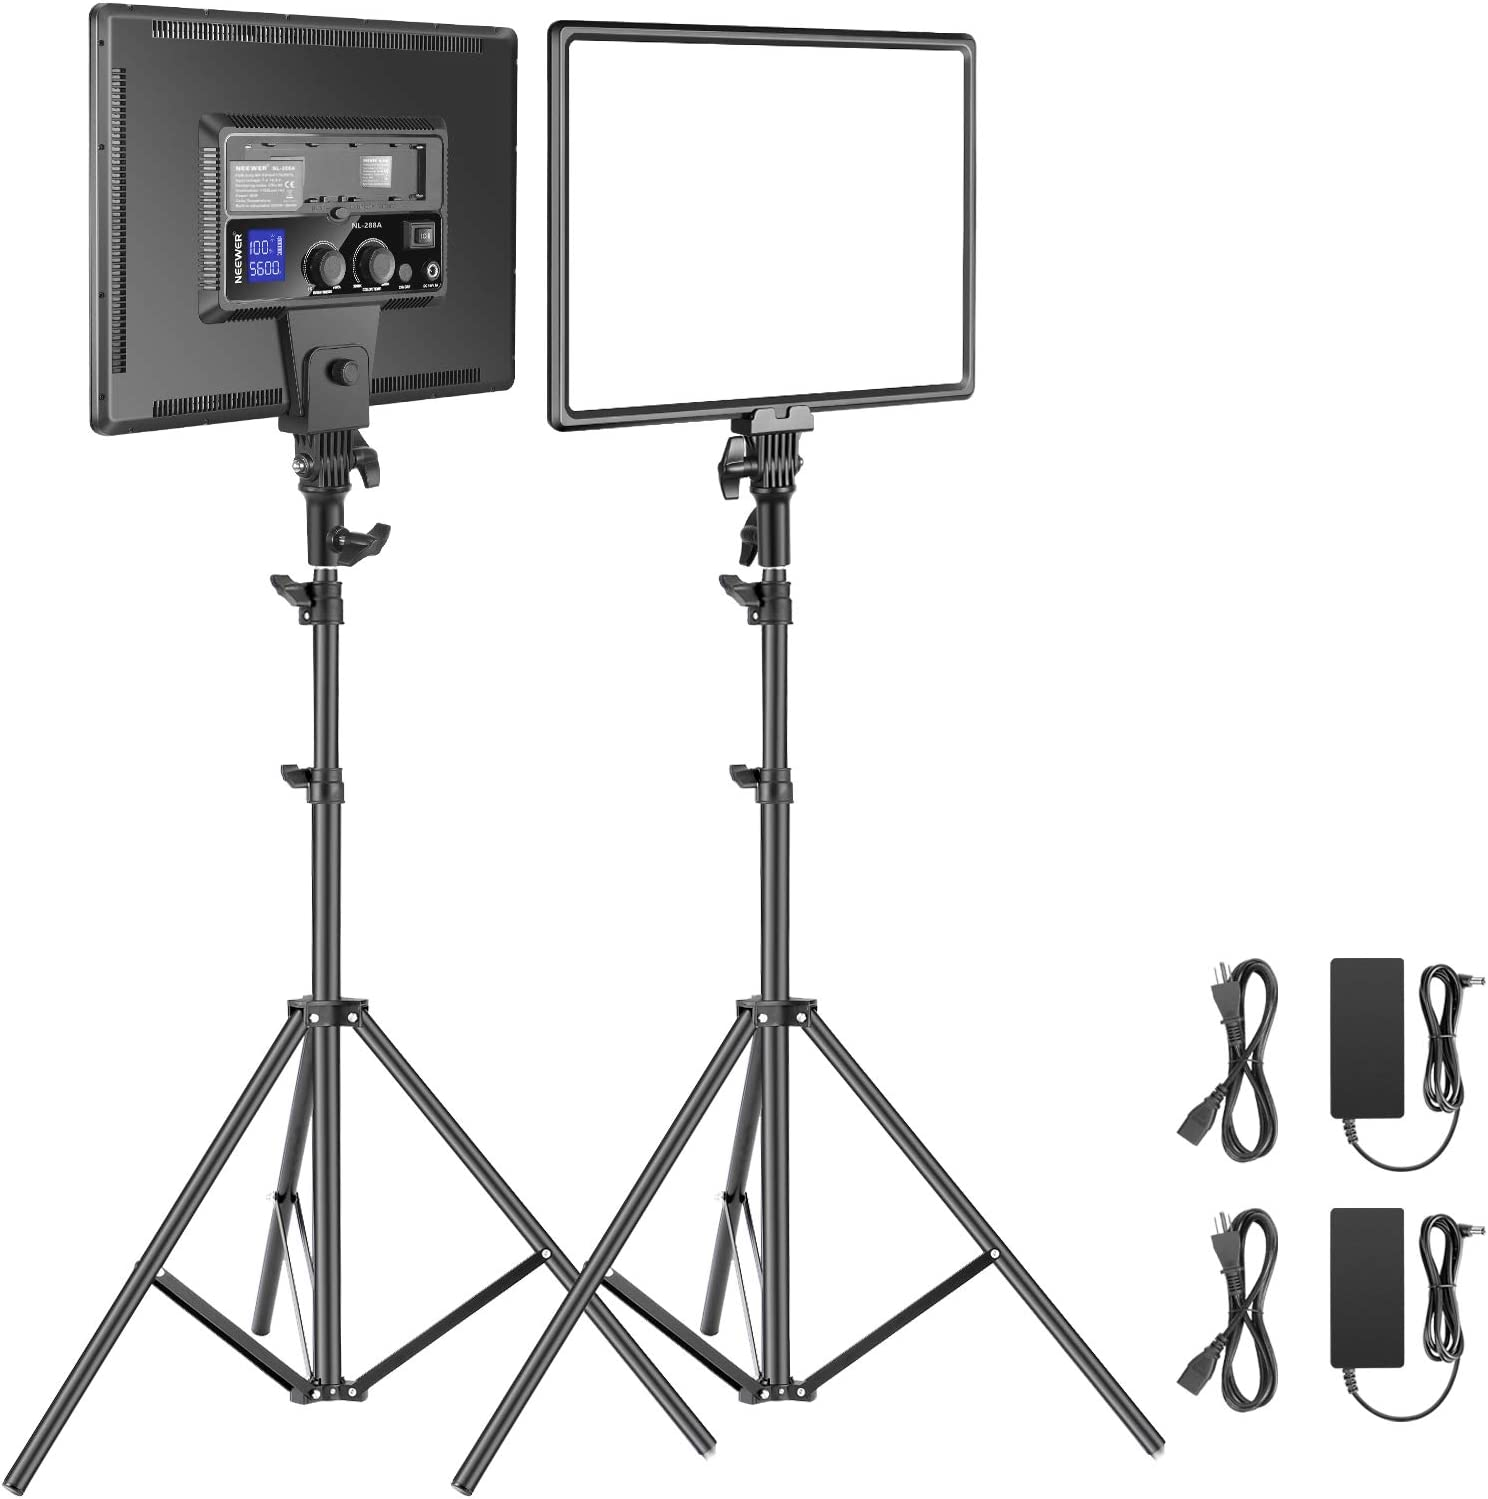 Neewer LED Video Lighting Kit with Stand 6.5ft 2-Pack Bargain sale 40W Directly managed store Dimma